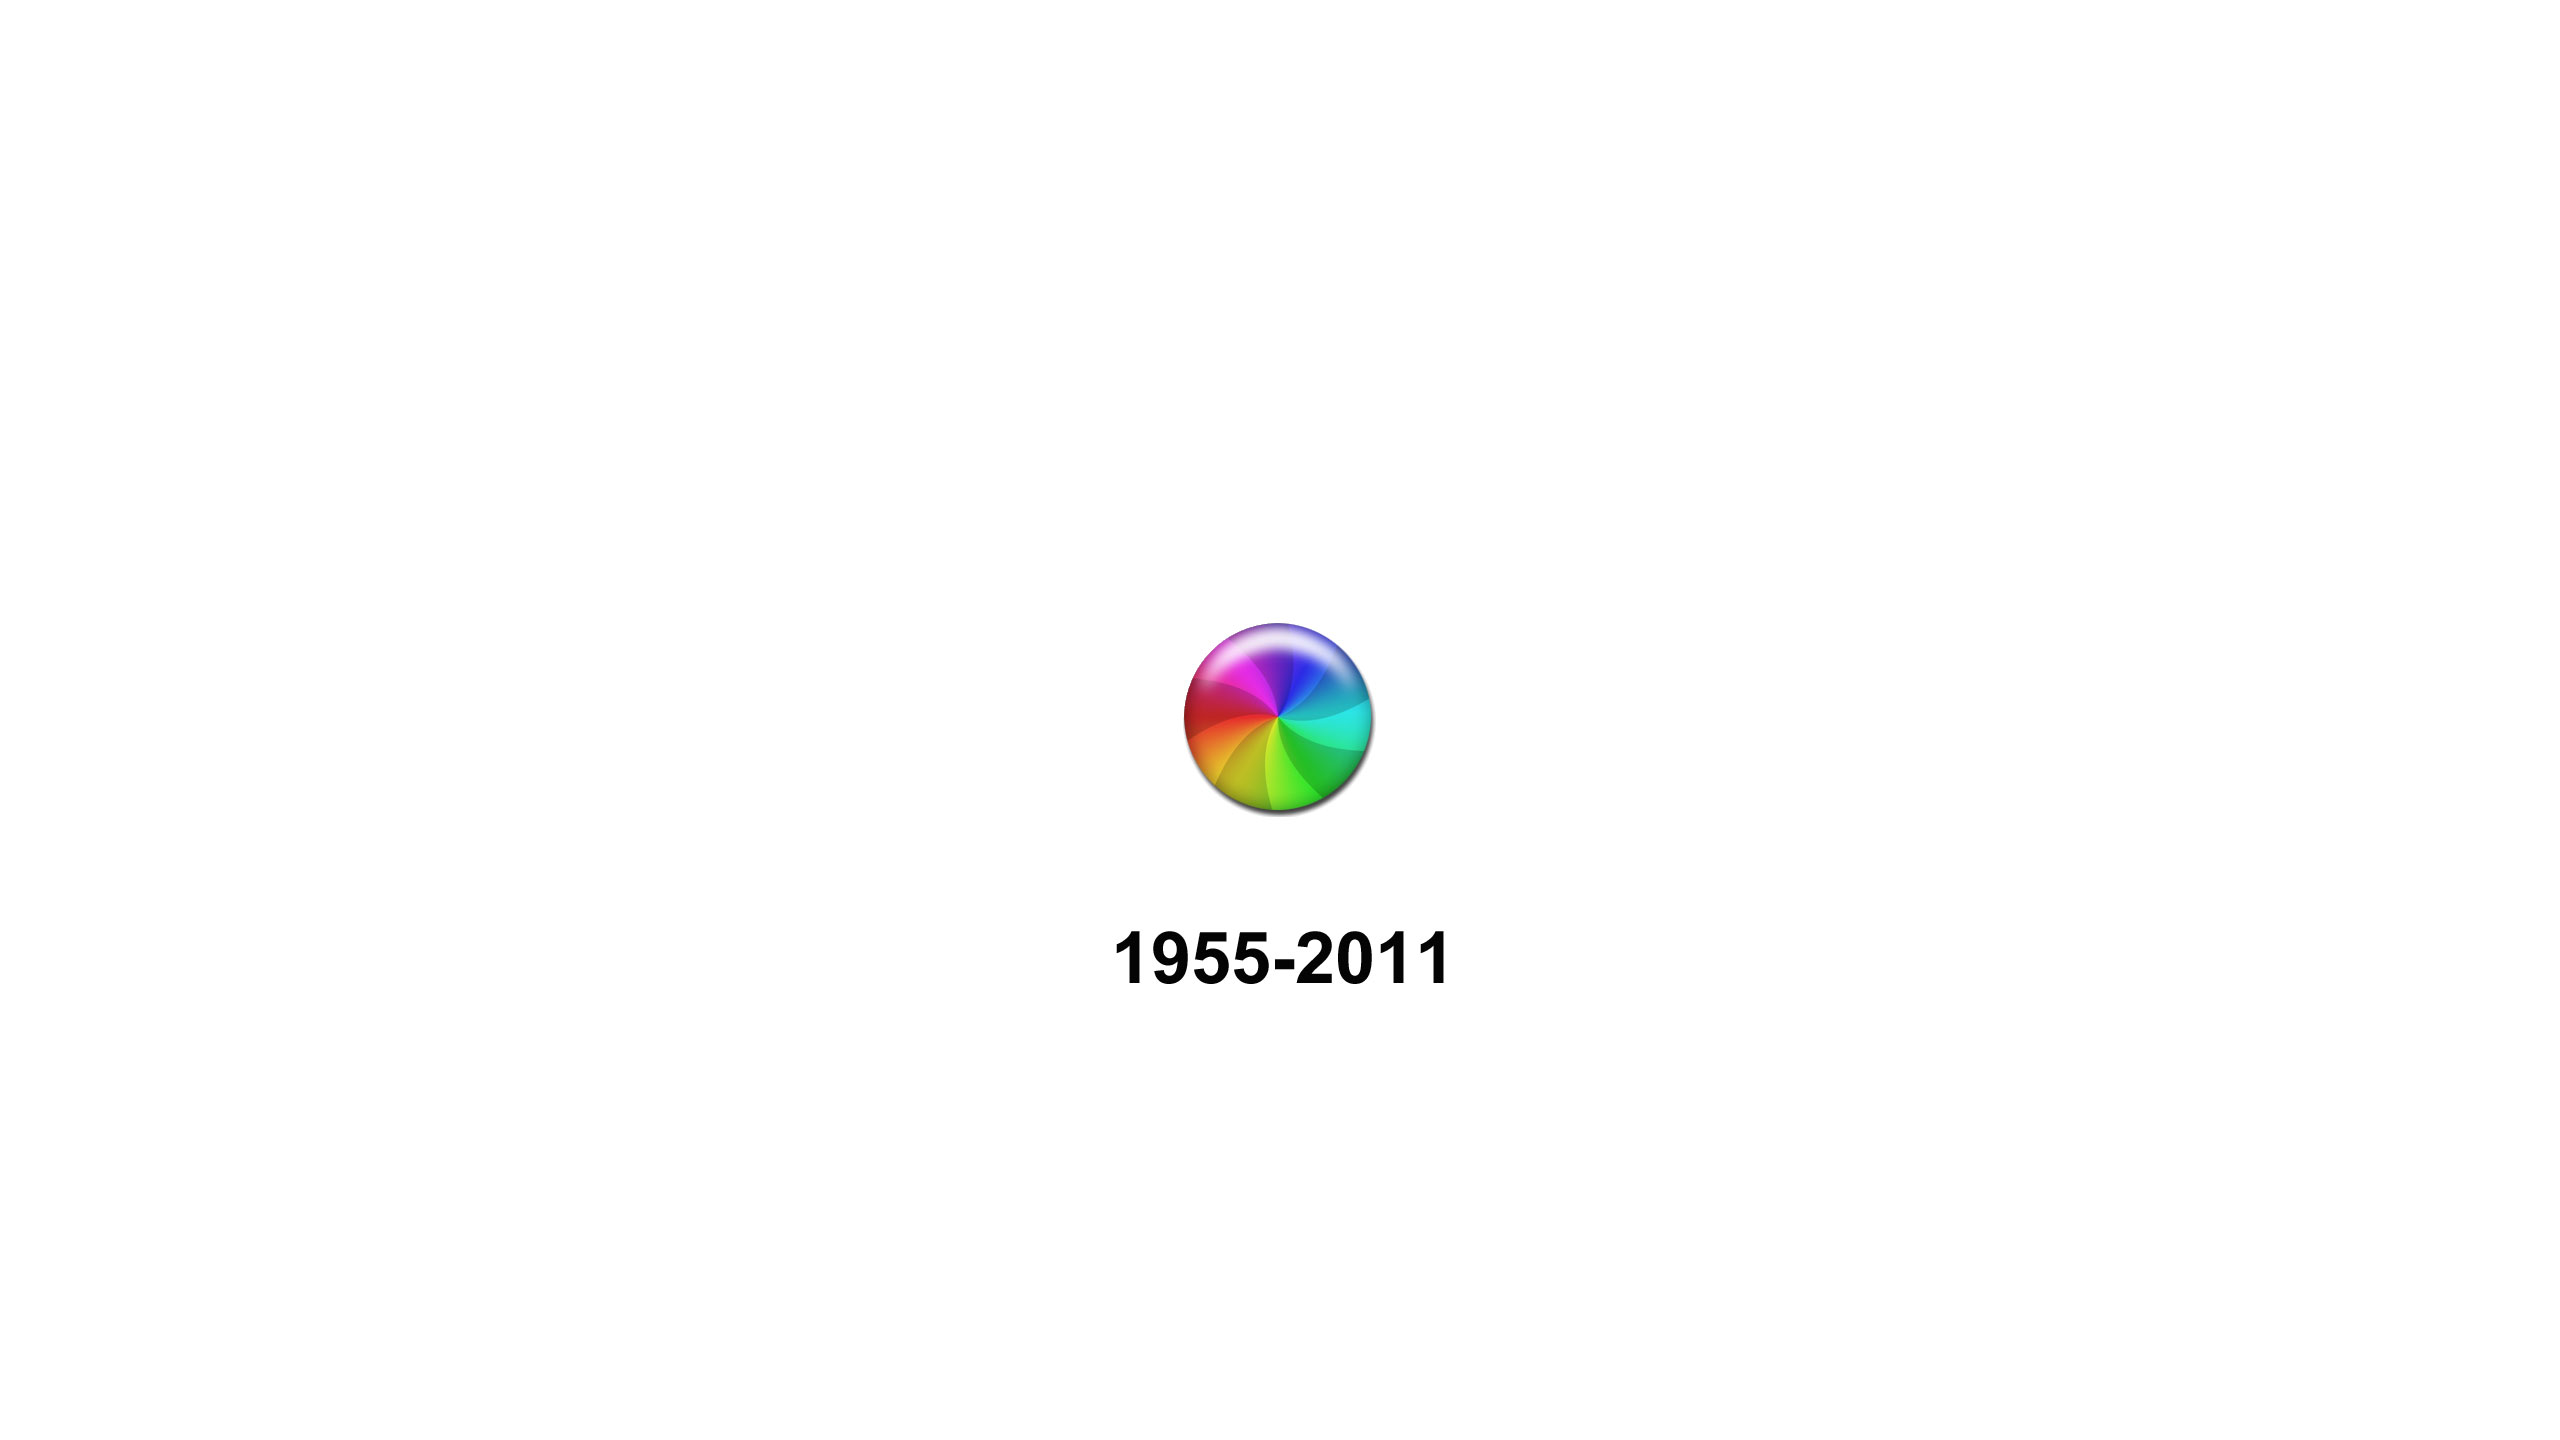 RIP Steve Jobs, and thank you